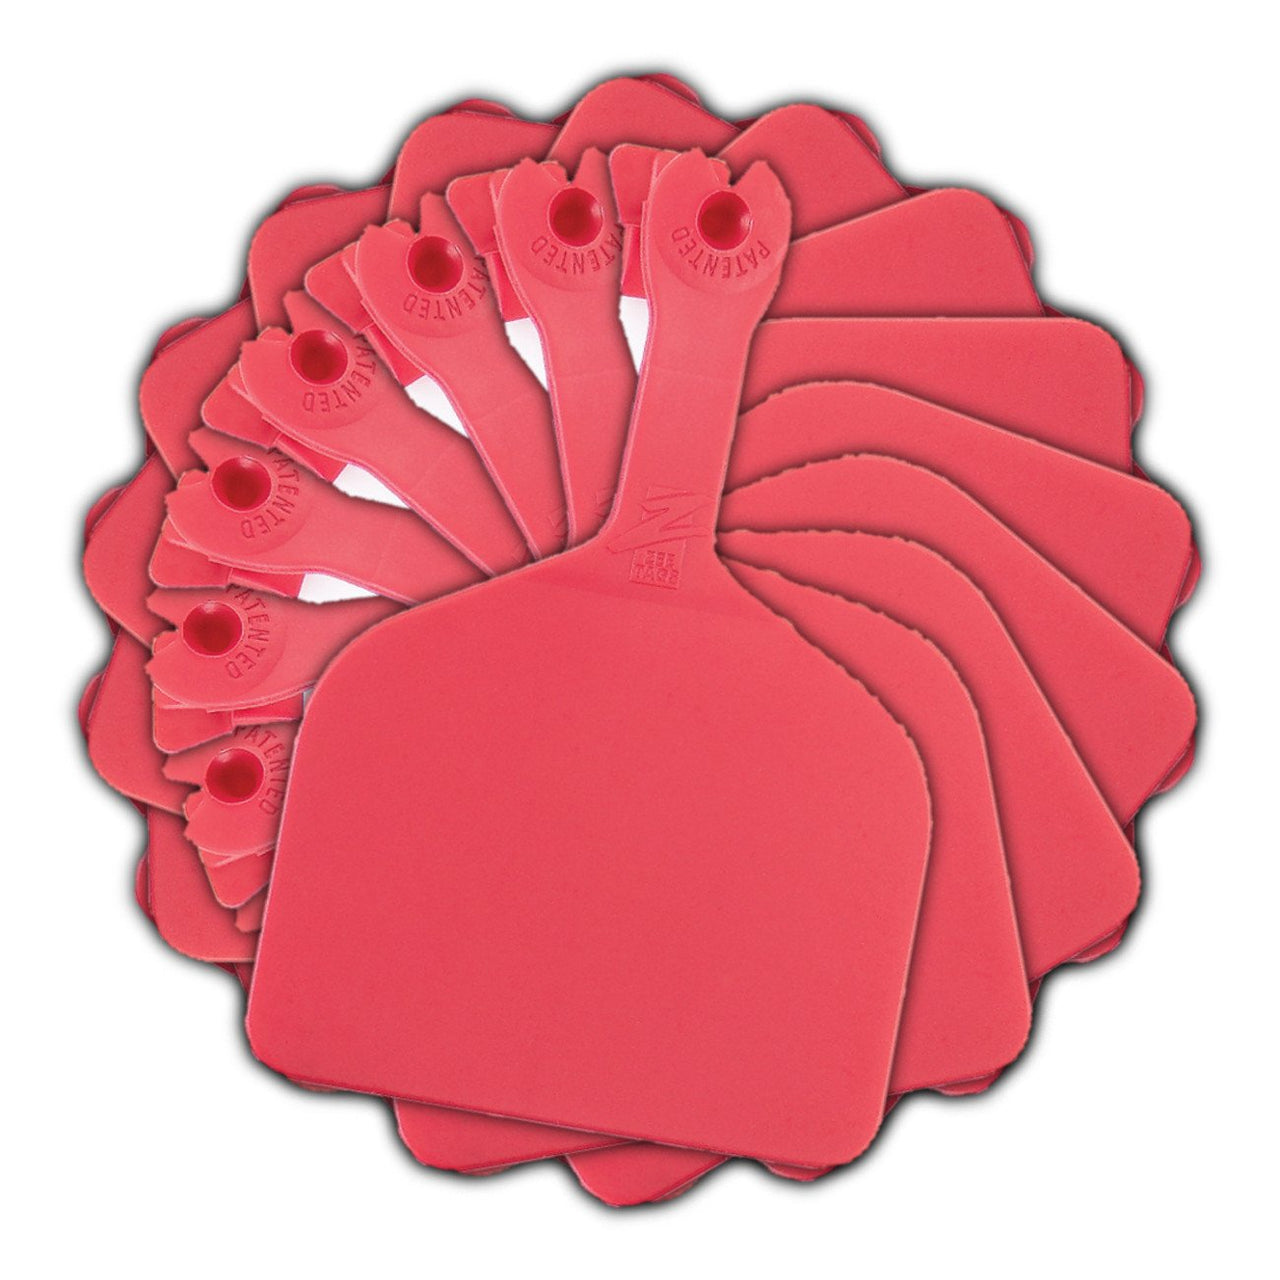 Z Tags Feedlot Blank - Red (50 Pack) - Feedlot Tags Blank Z Tags - Canada